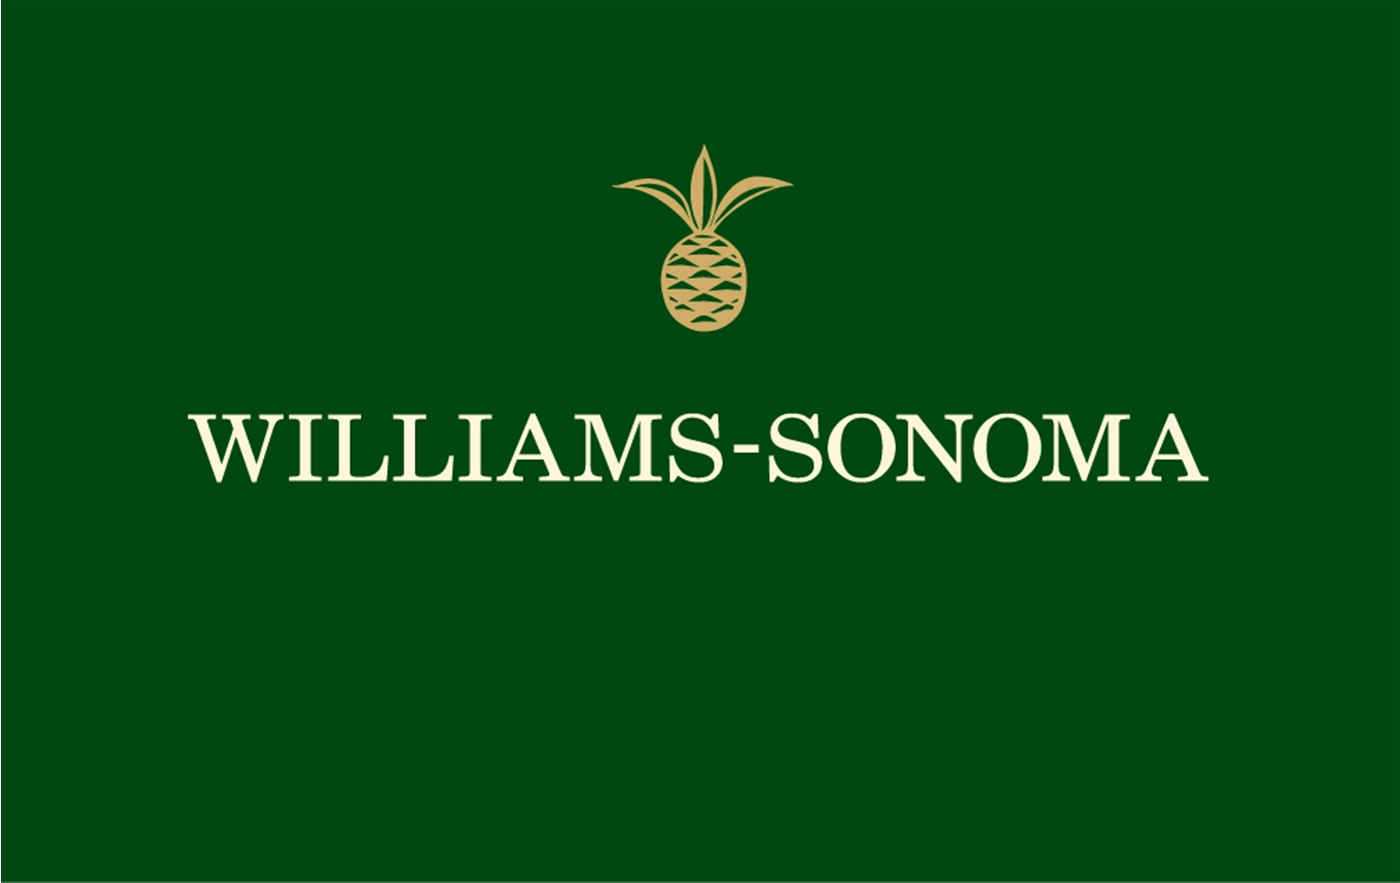 © Williams-Sonoma Inc. All Rights Reserved.